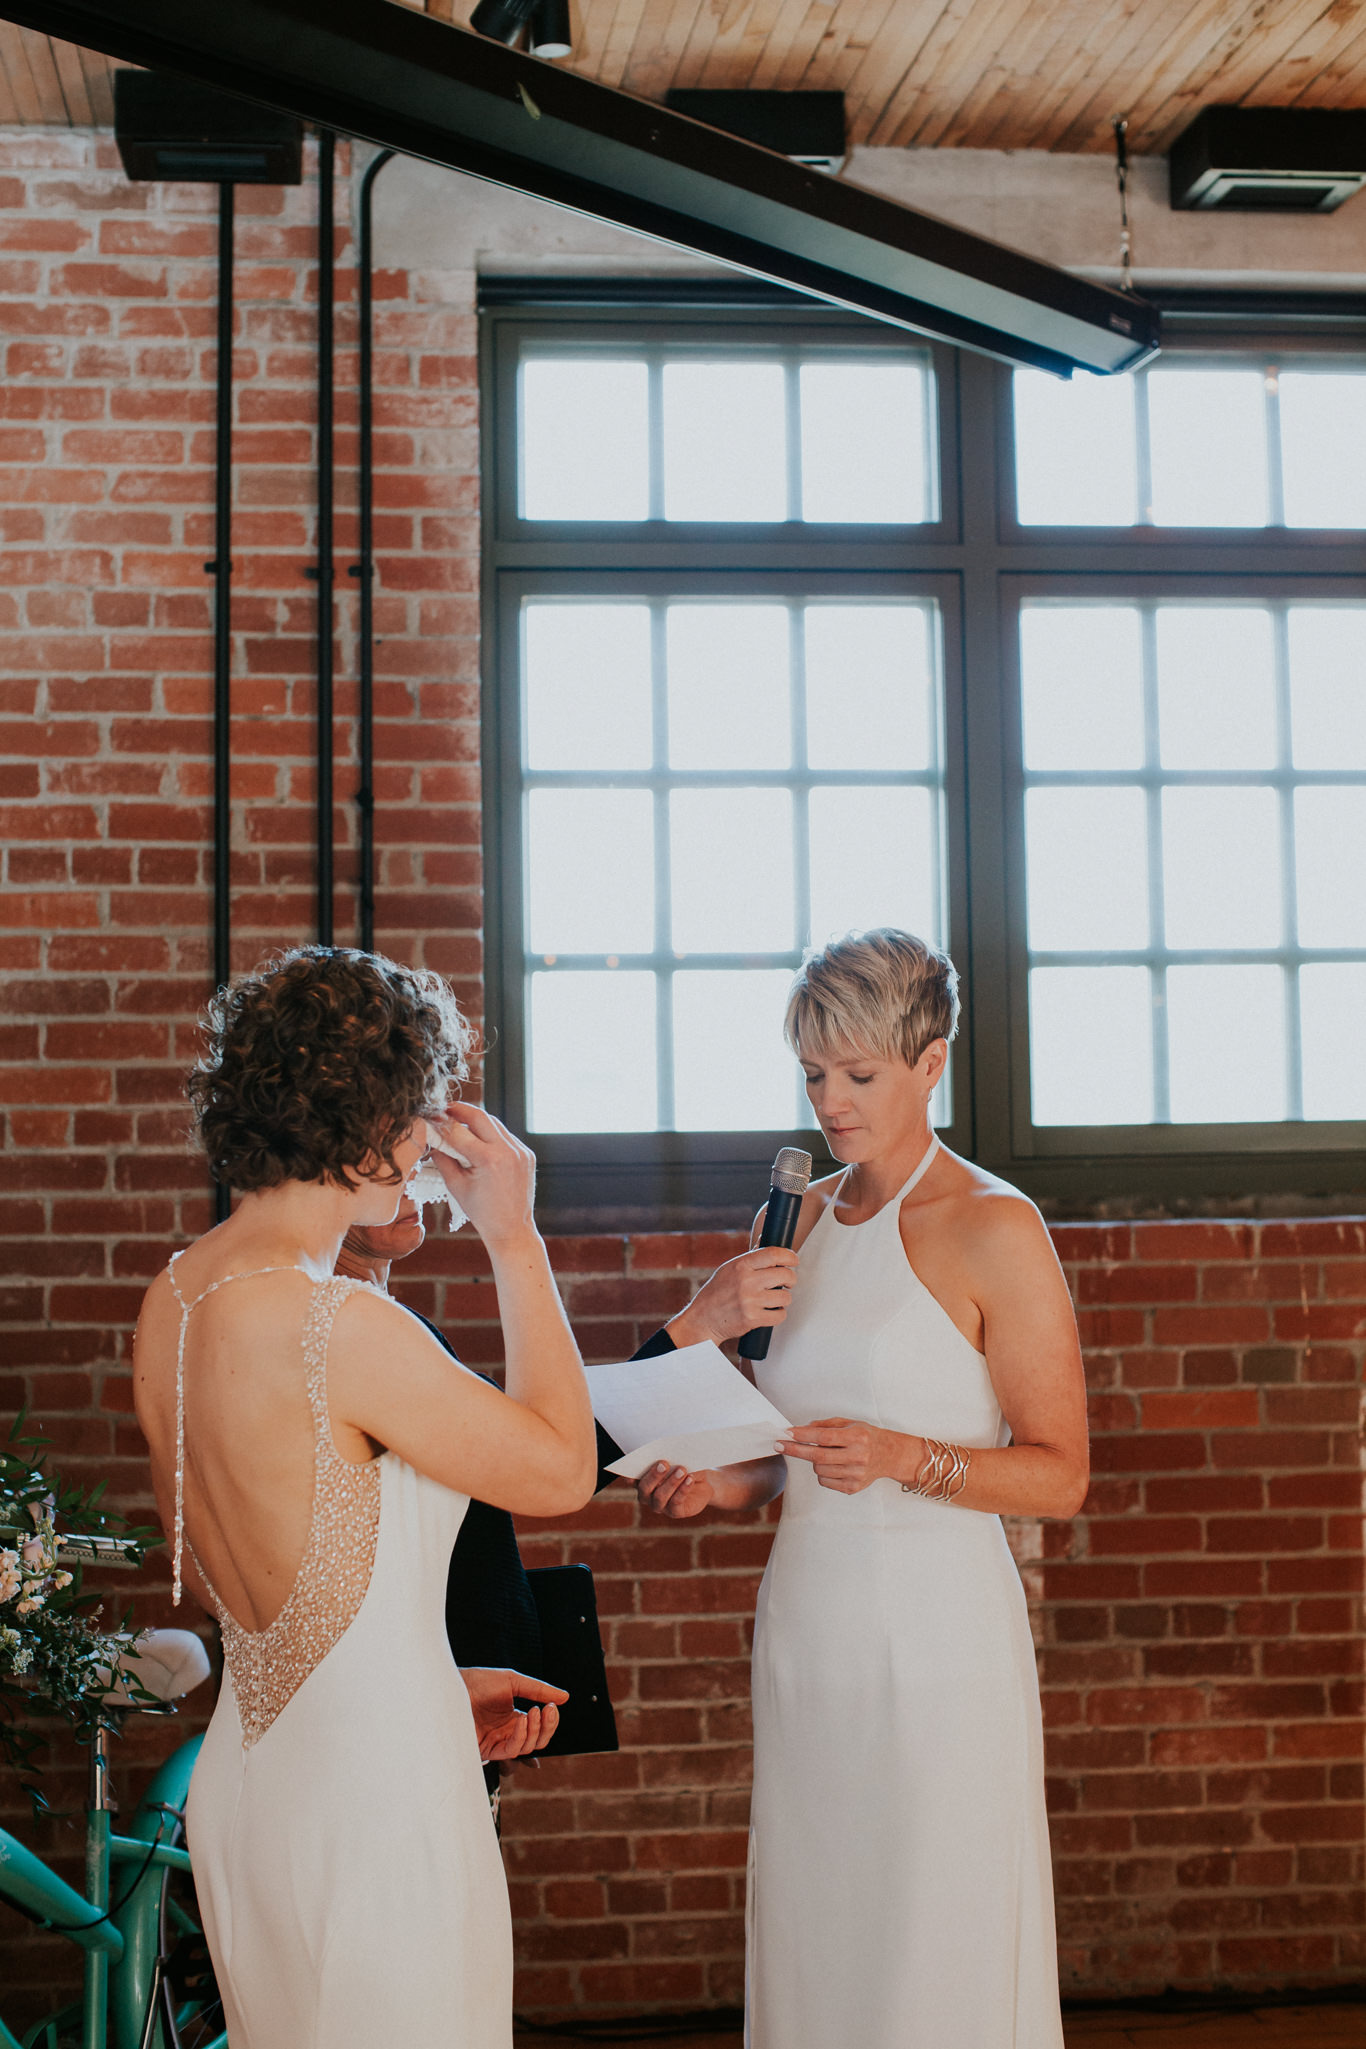 Lindsay-and-Heather-Charbar-Restaurant-Wedding-in-Calgary-103